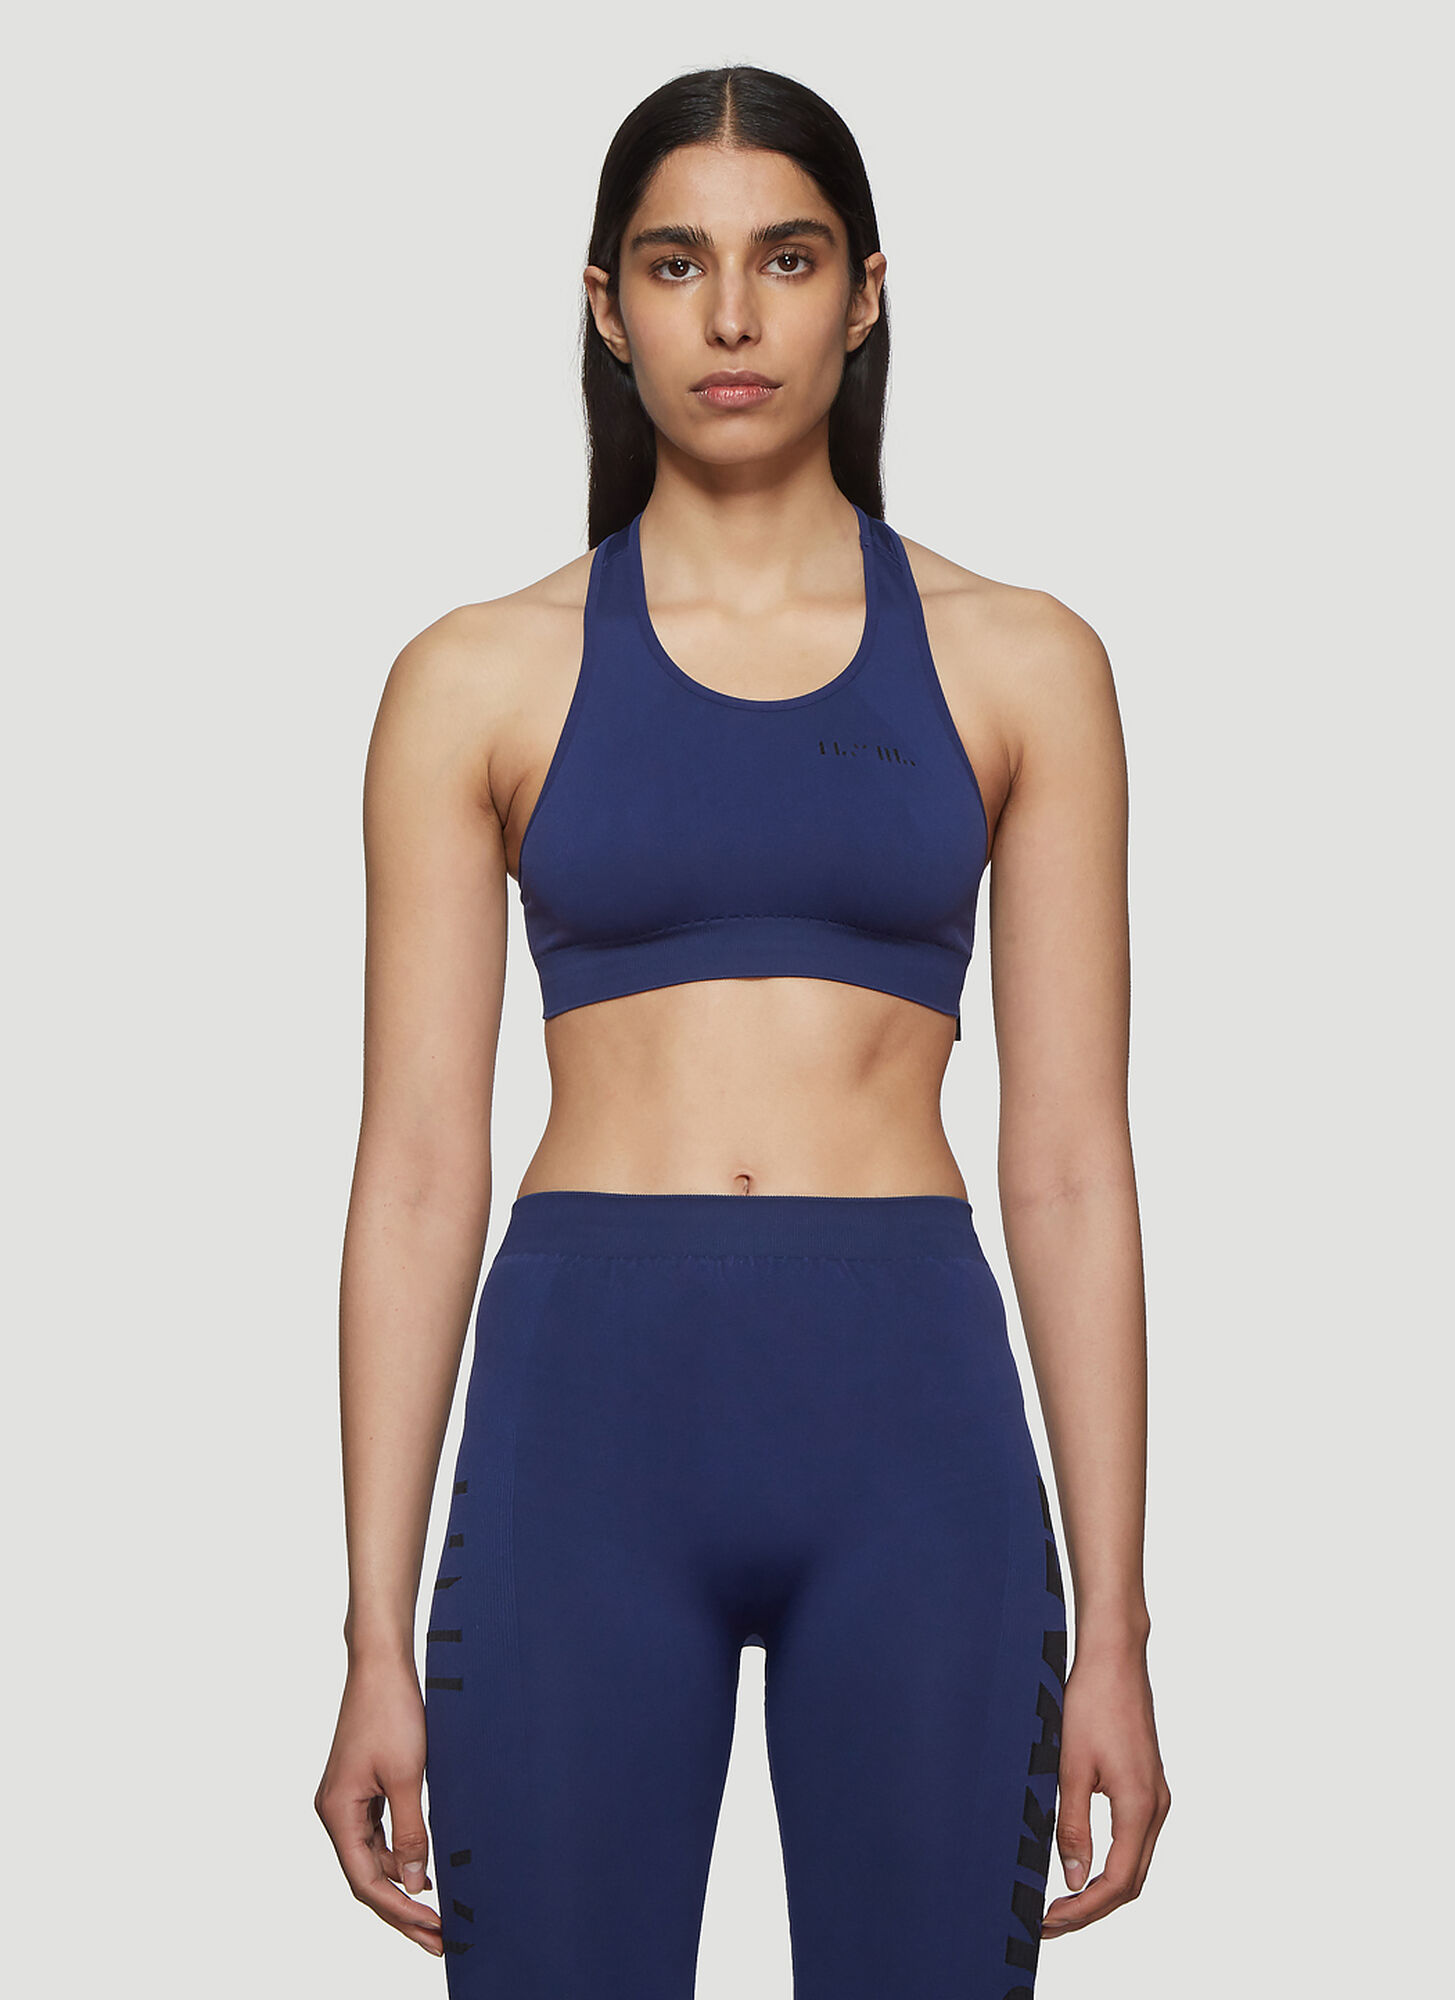 Unravel Project Tech Seamless Bra Top in Blue